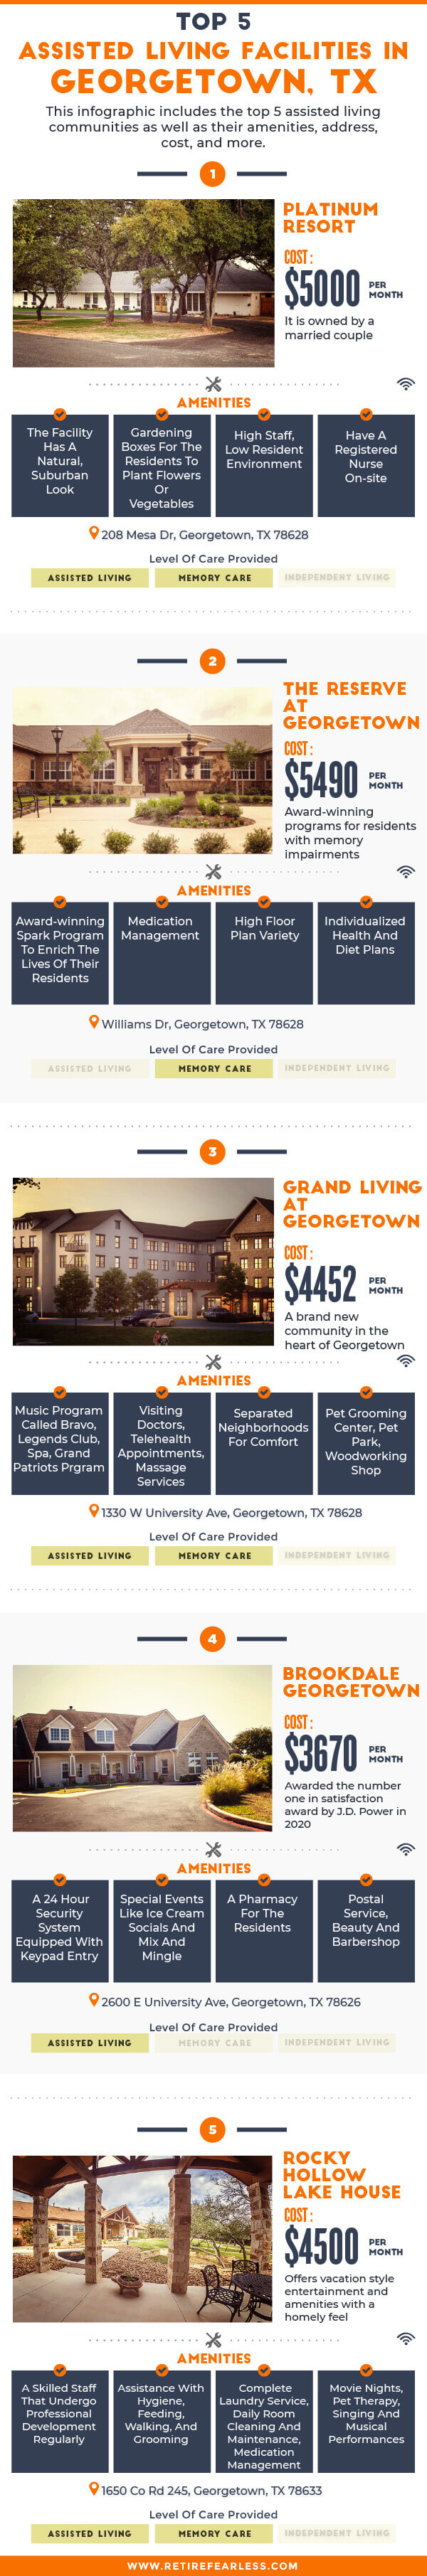 5 Best Assisted Living Facilities Georgetown, TX